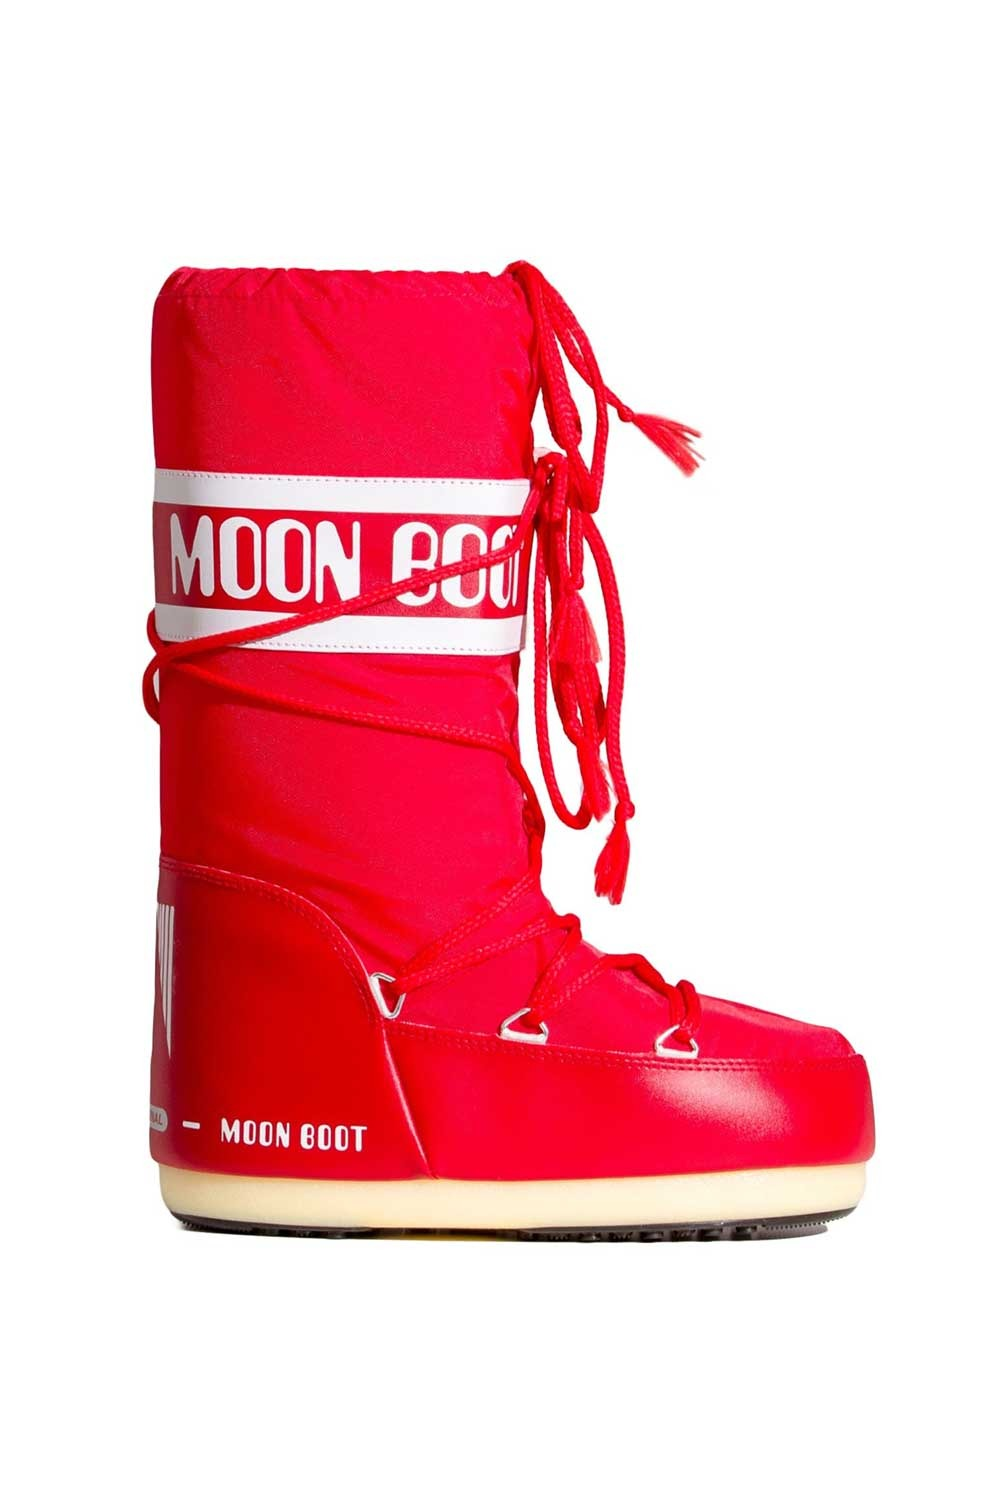 문부츠 여성 방한부츠 나일론 5MQ888RE / RED MOONBOOT WMS MOON BOOT NYLON_A6MQ888RE